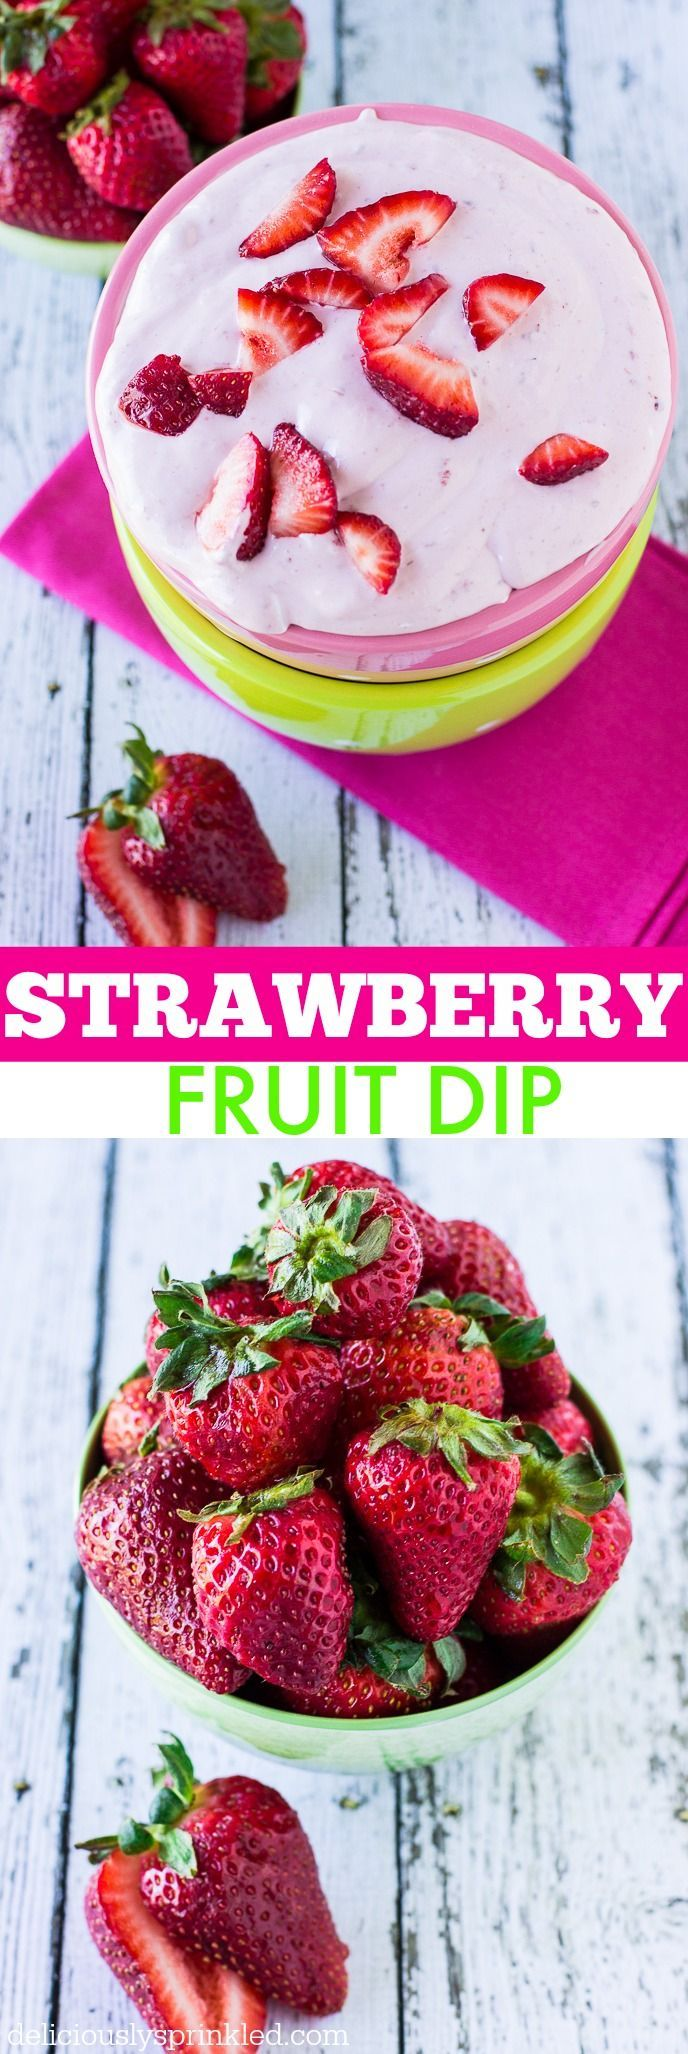 The BEST Strawberry Fruit Dip